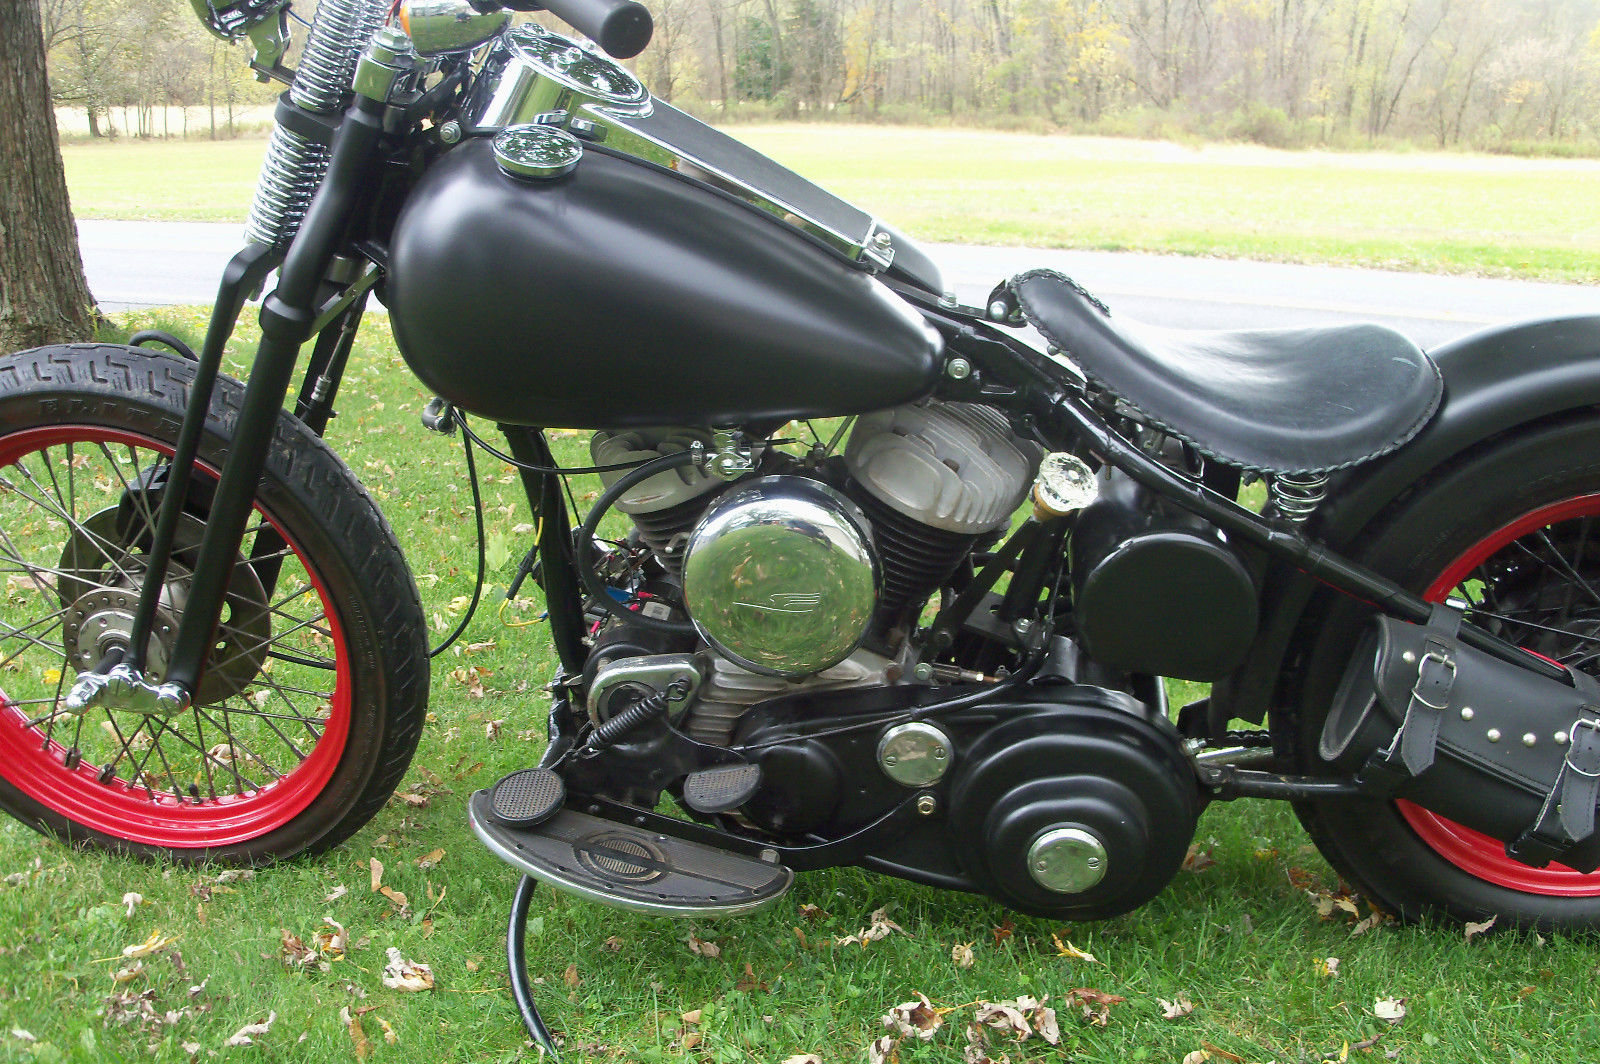 1948 harley davidson wl flathead 45 solo. Black Bedroom Furniture Sets. Home Design Ideas